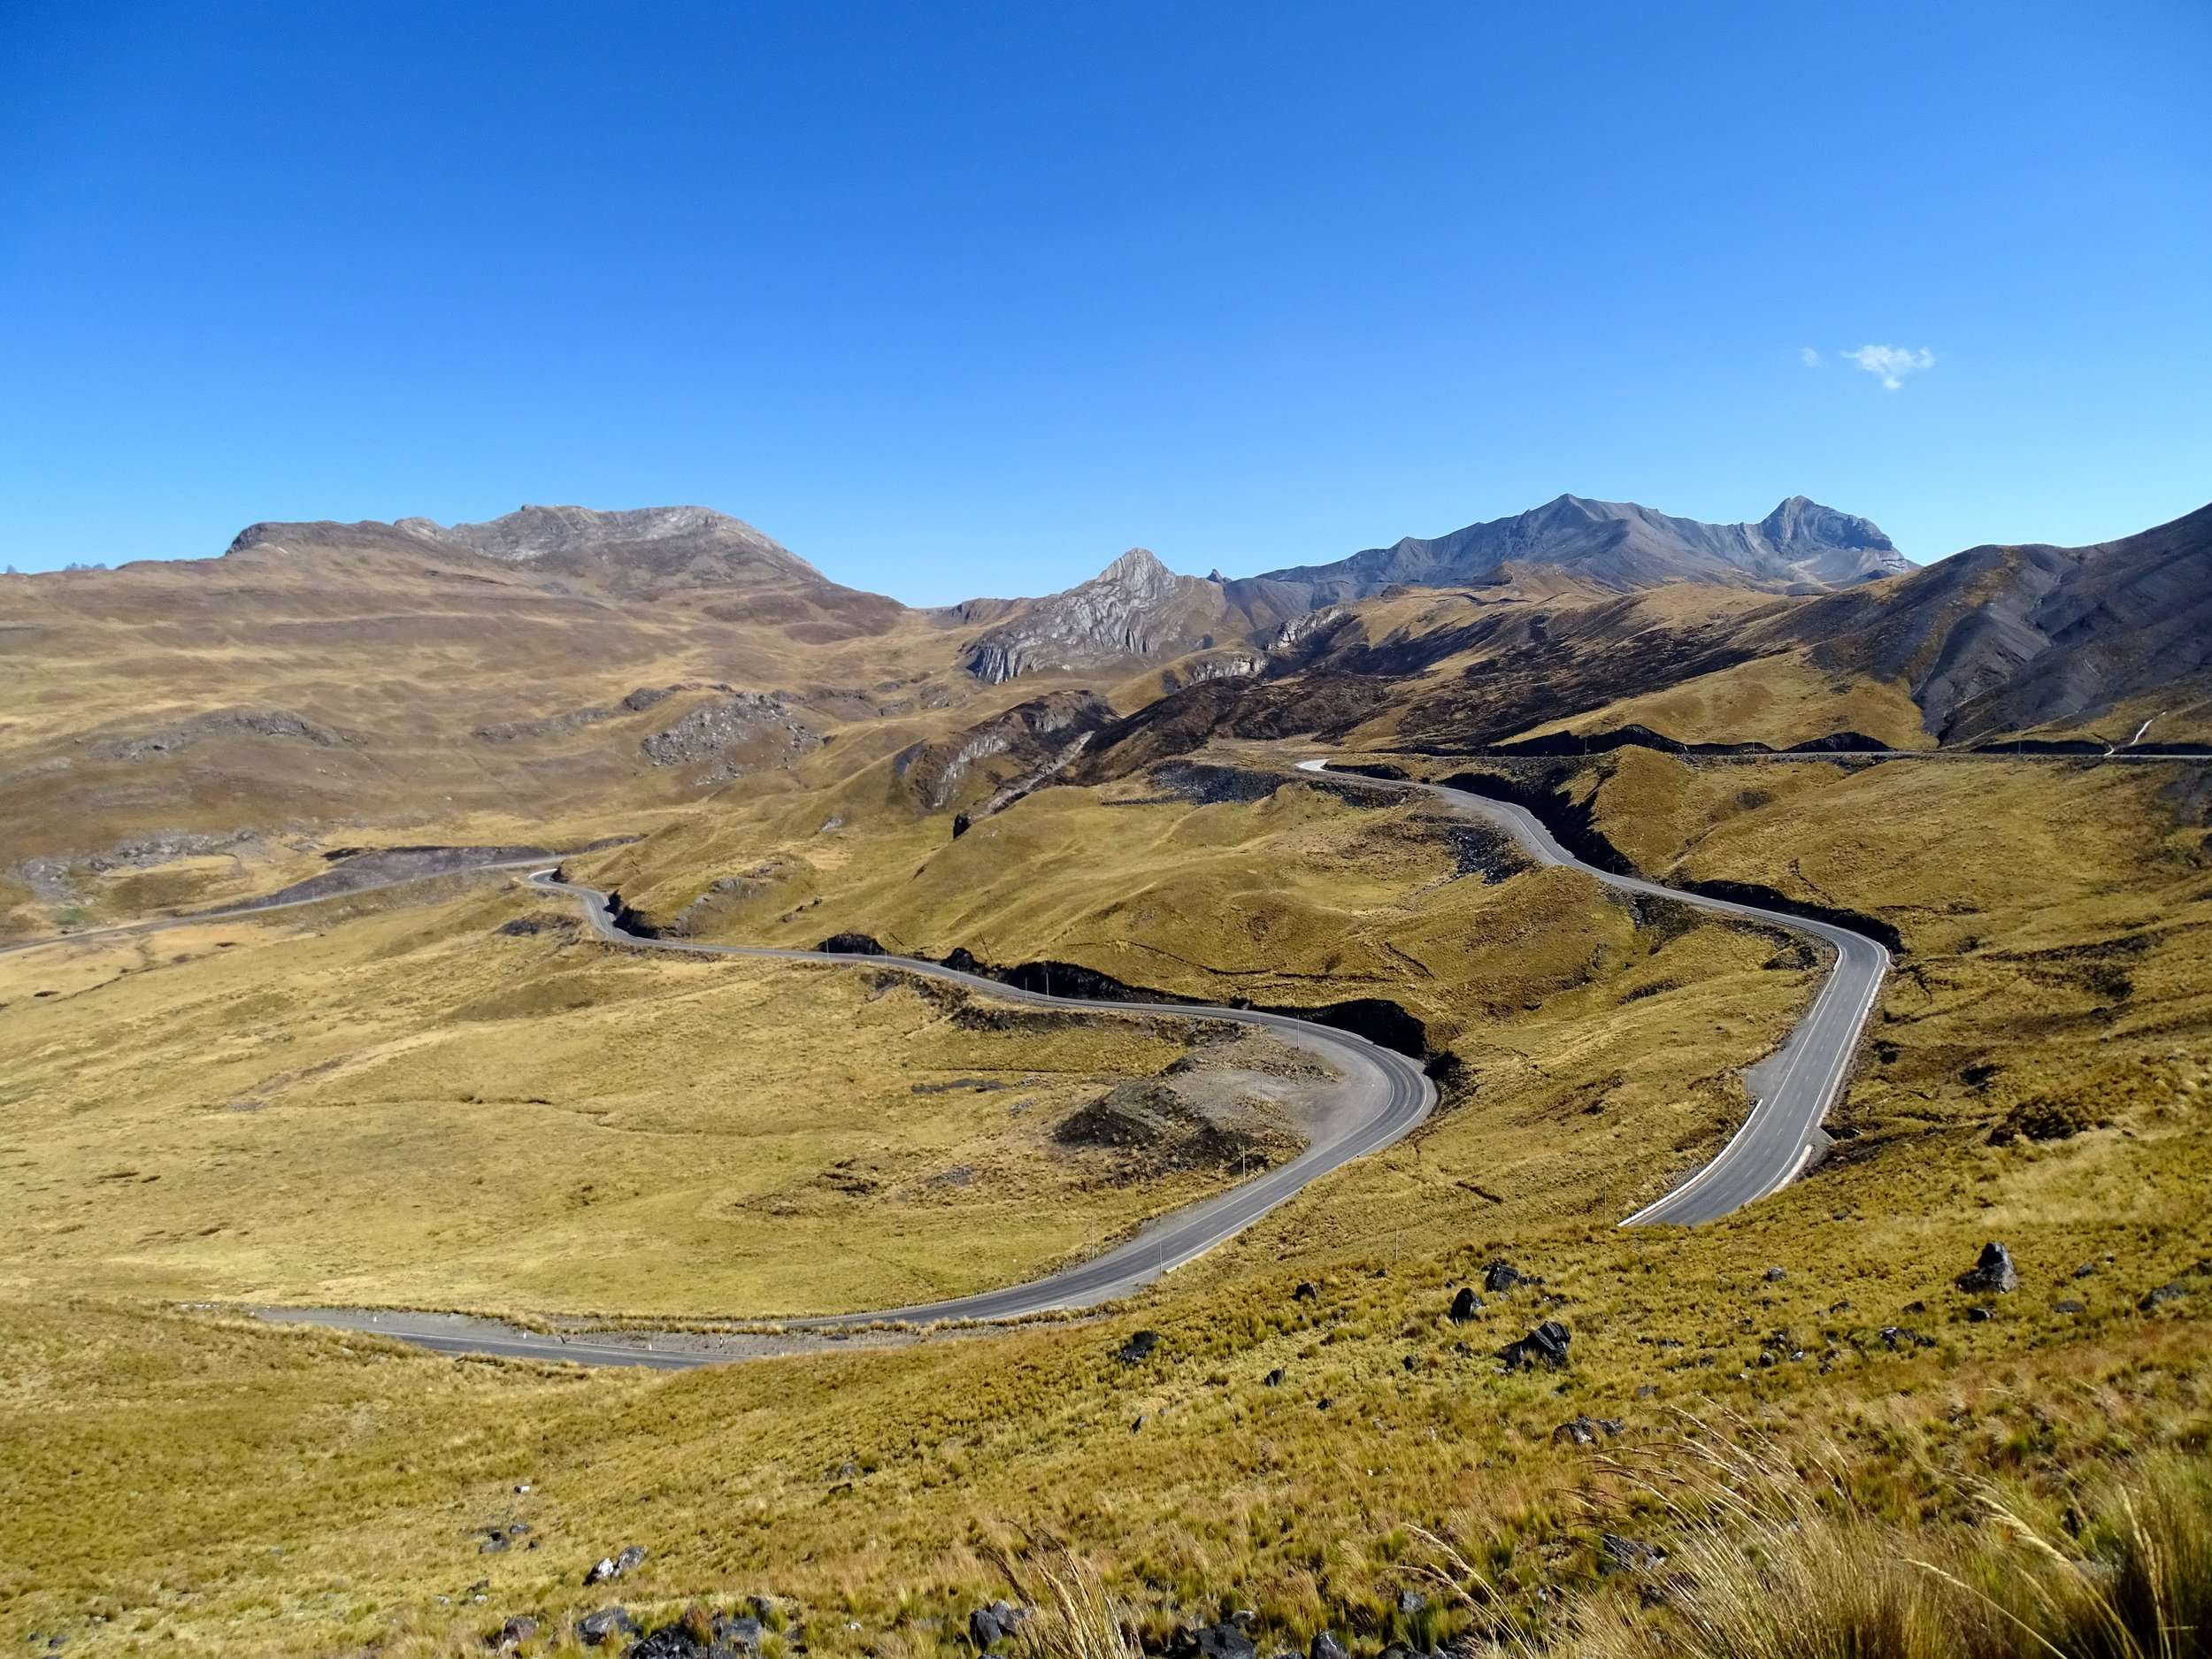 Nice, winding roads at 4,700 meters as we crested the pass over the southern part of the Cordillera Blanca.